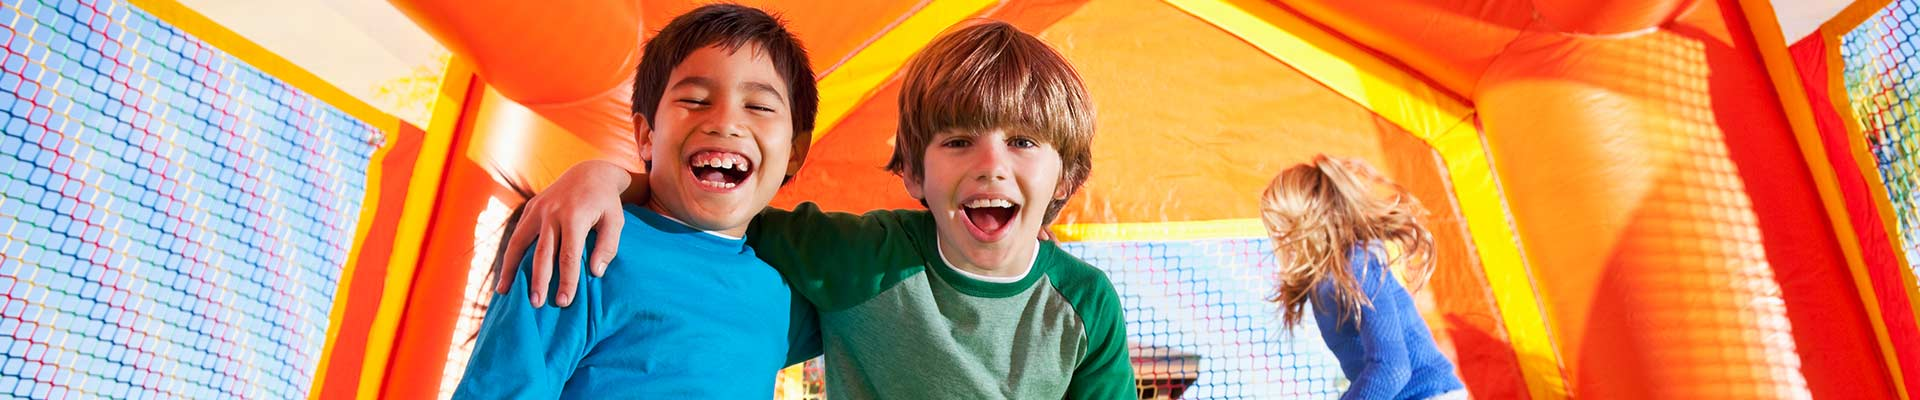 Bounce House Hage Orthodontics Mattoon Decatur Effingham, IL